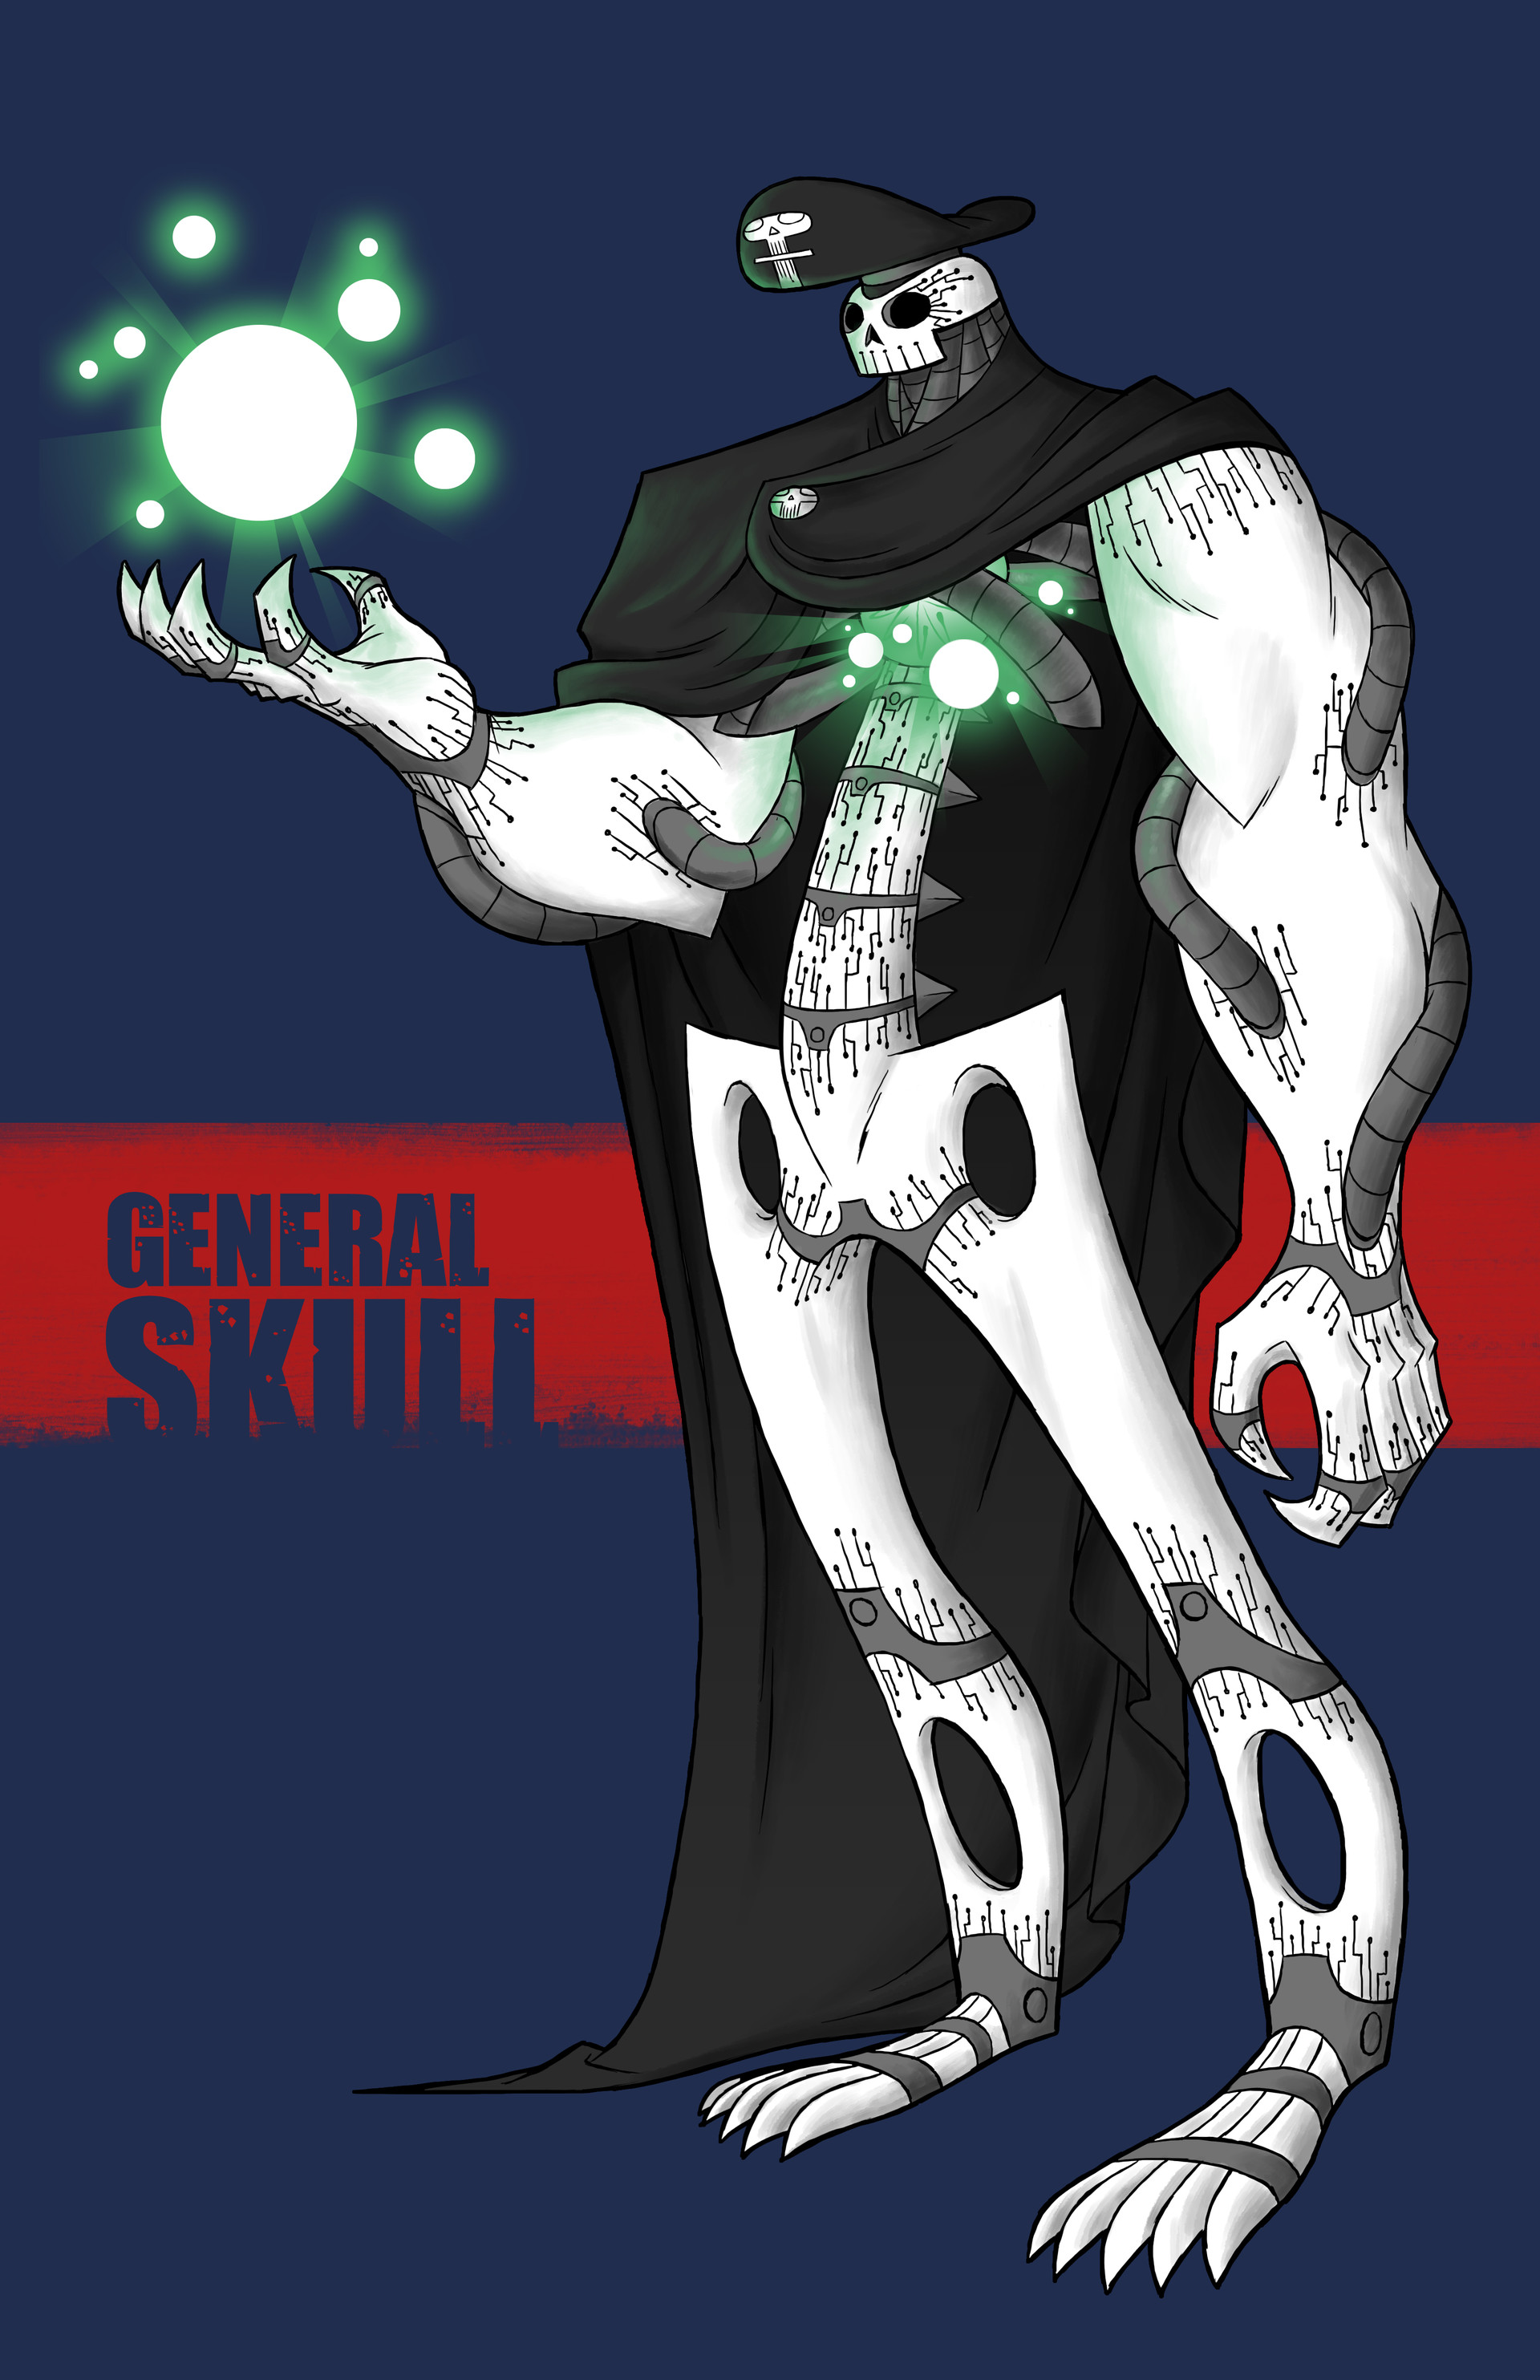 The incarnation of death itself and wilder of unimaginable power, General skull is a mighty and imposing being and is virtually unstoppable. Single minded in his lust for death, General Skull is hell bent on destroying all reality.